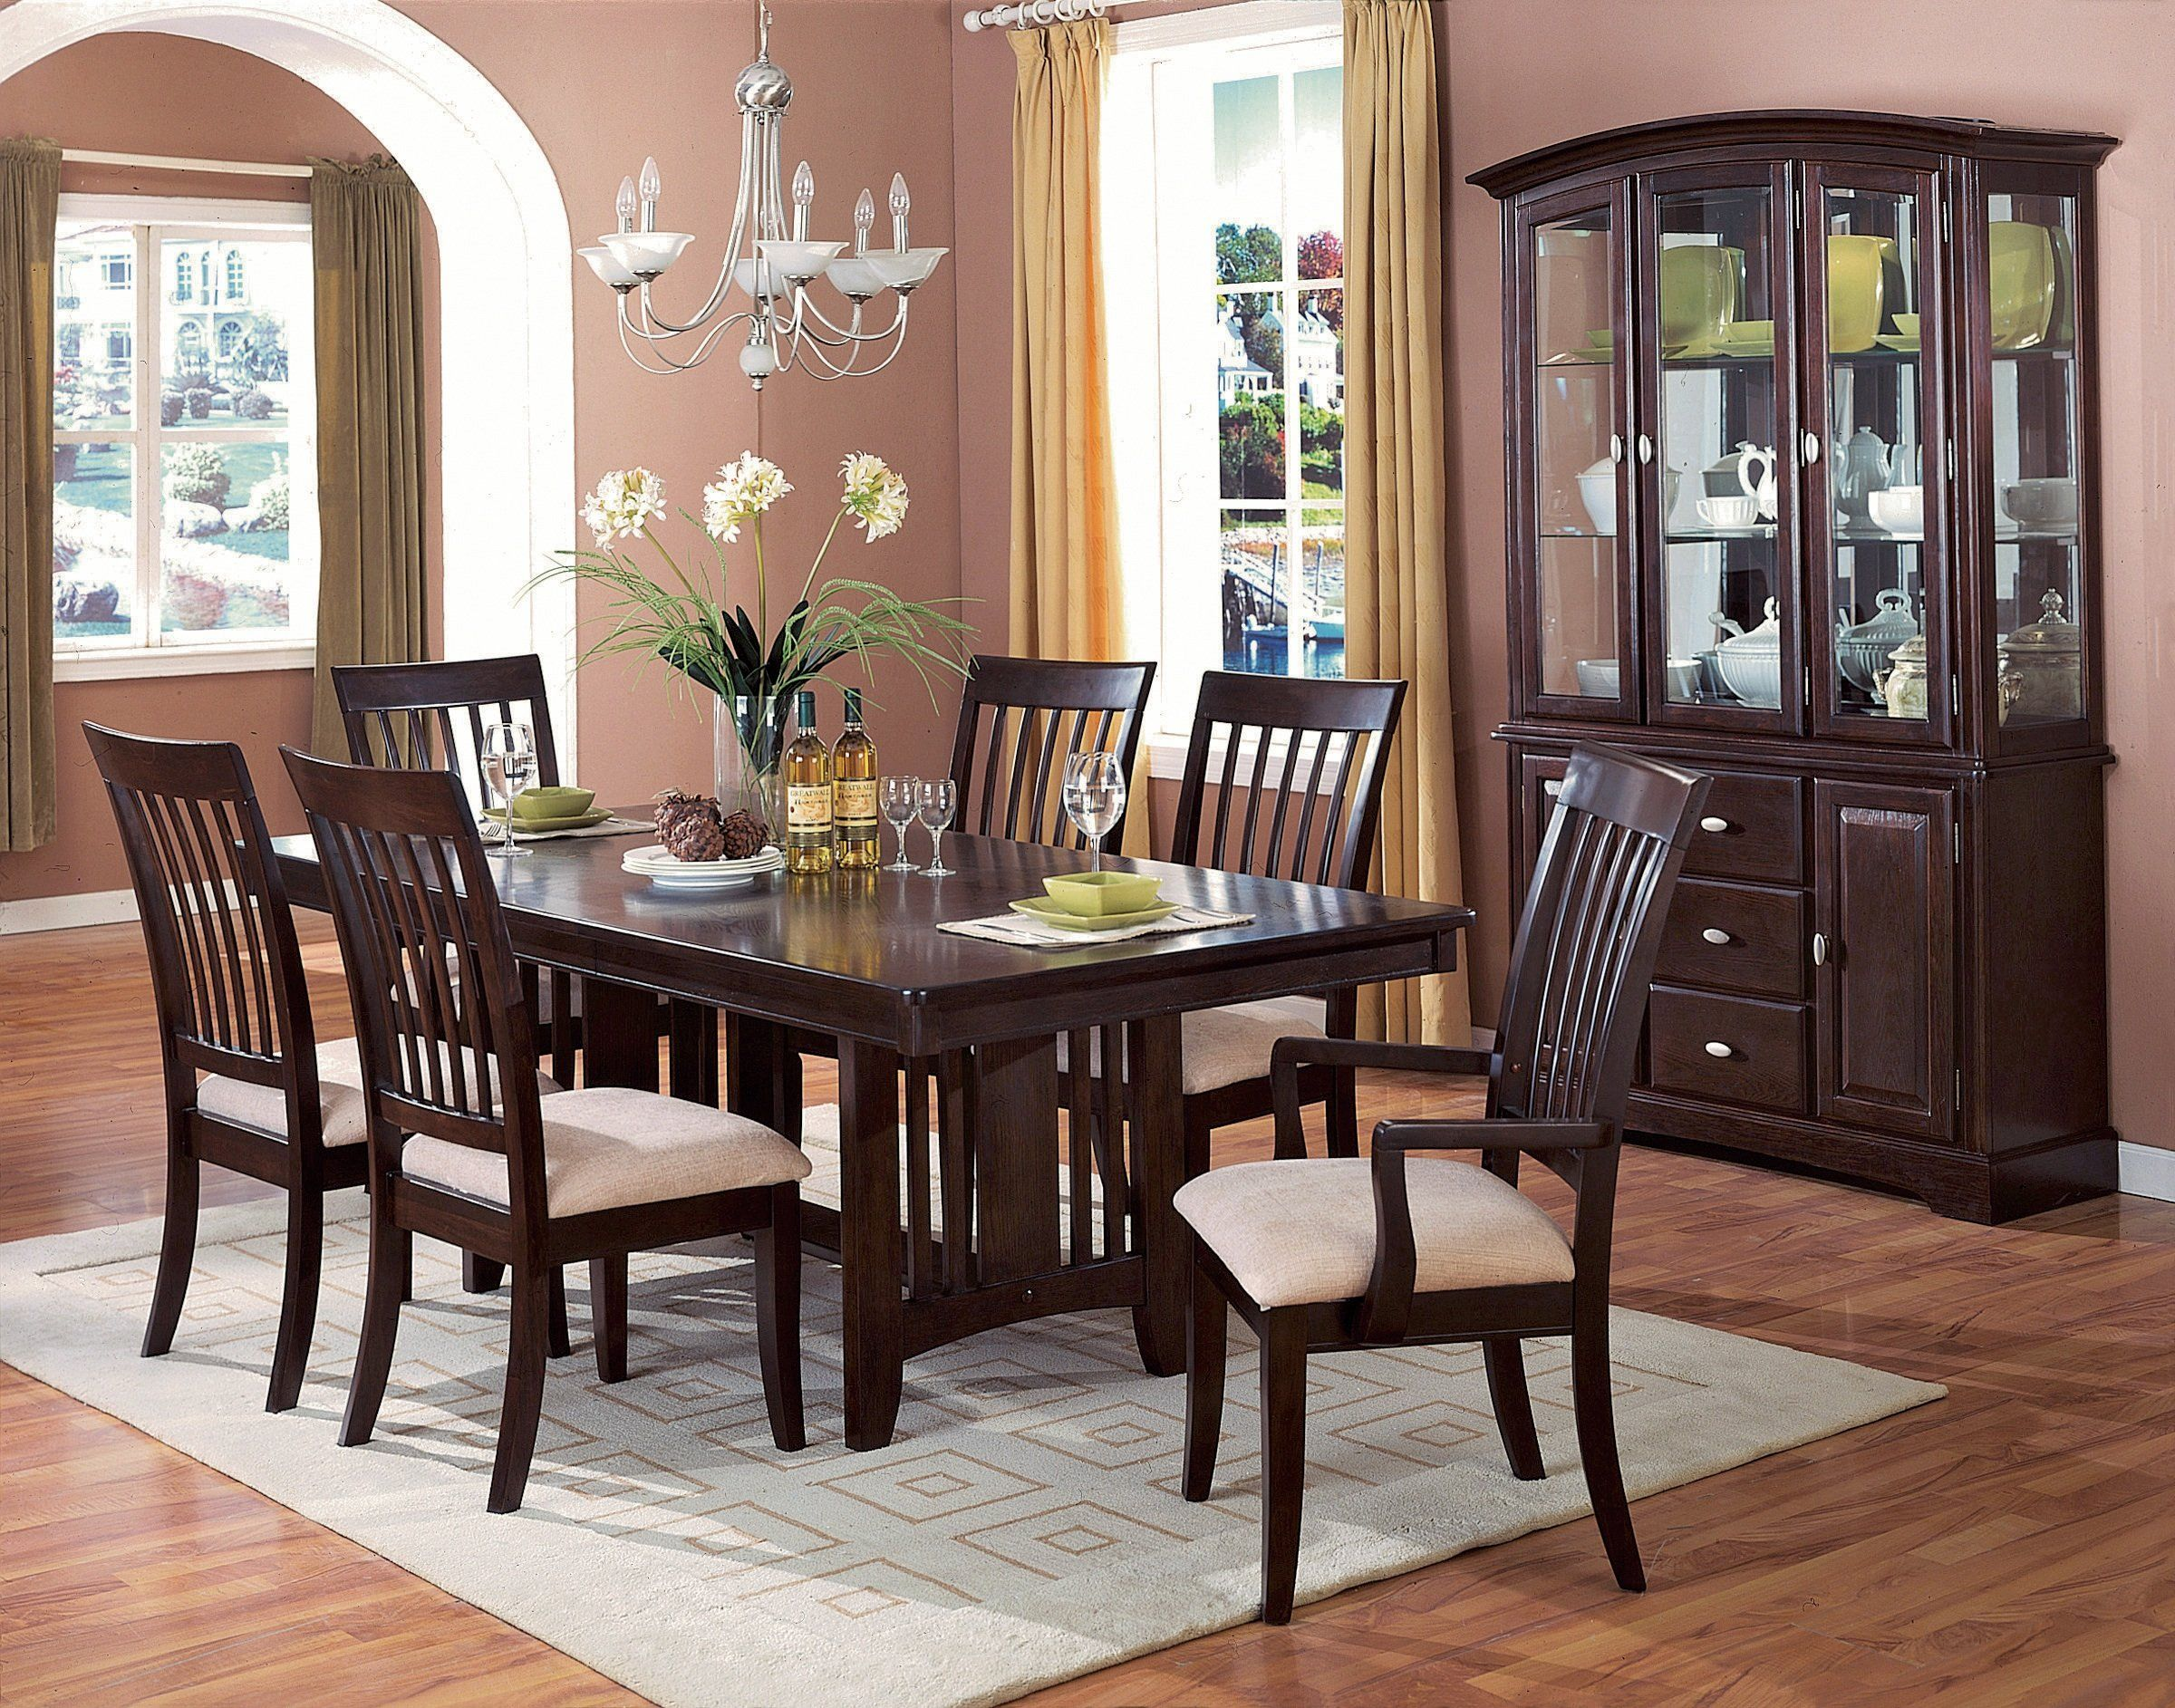 30 Rugs That Showcase Their Power Under The Dining Table Brown Dining Room Furniture Dining Room Furniture Sets Elegant Dining Room